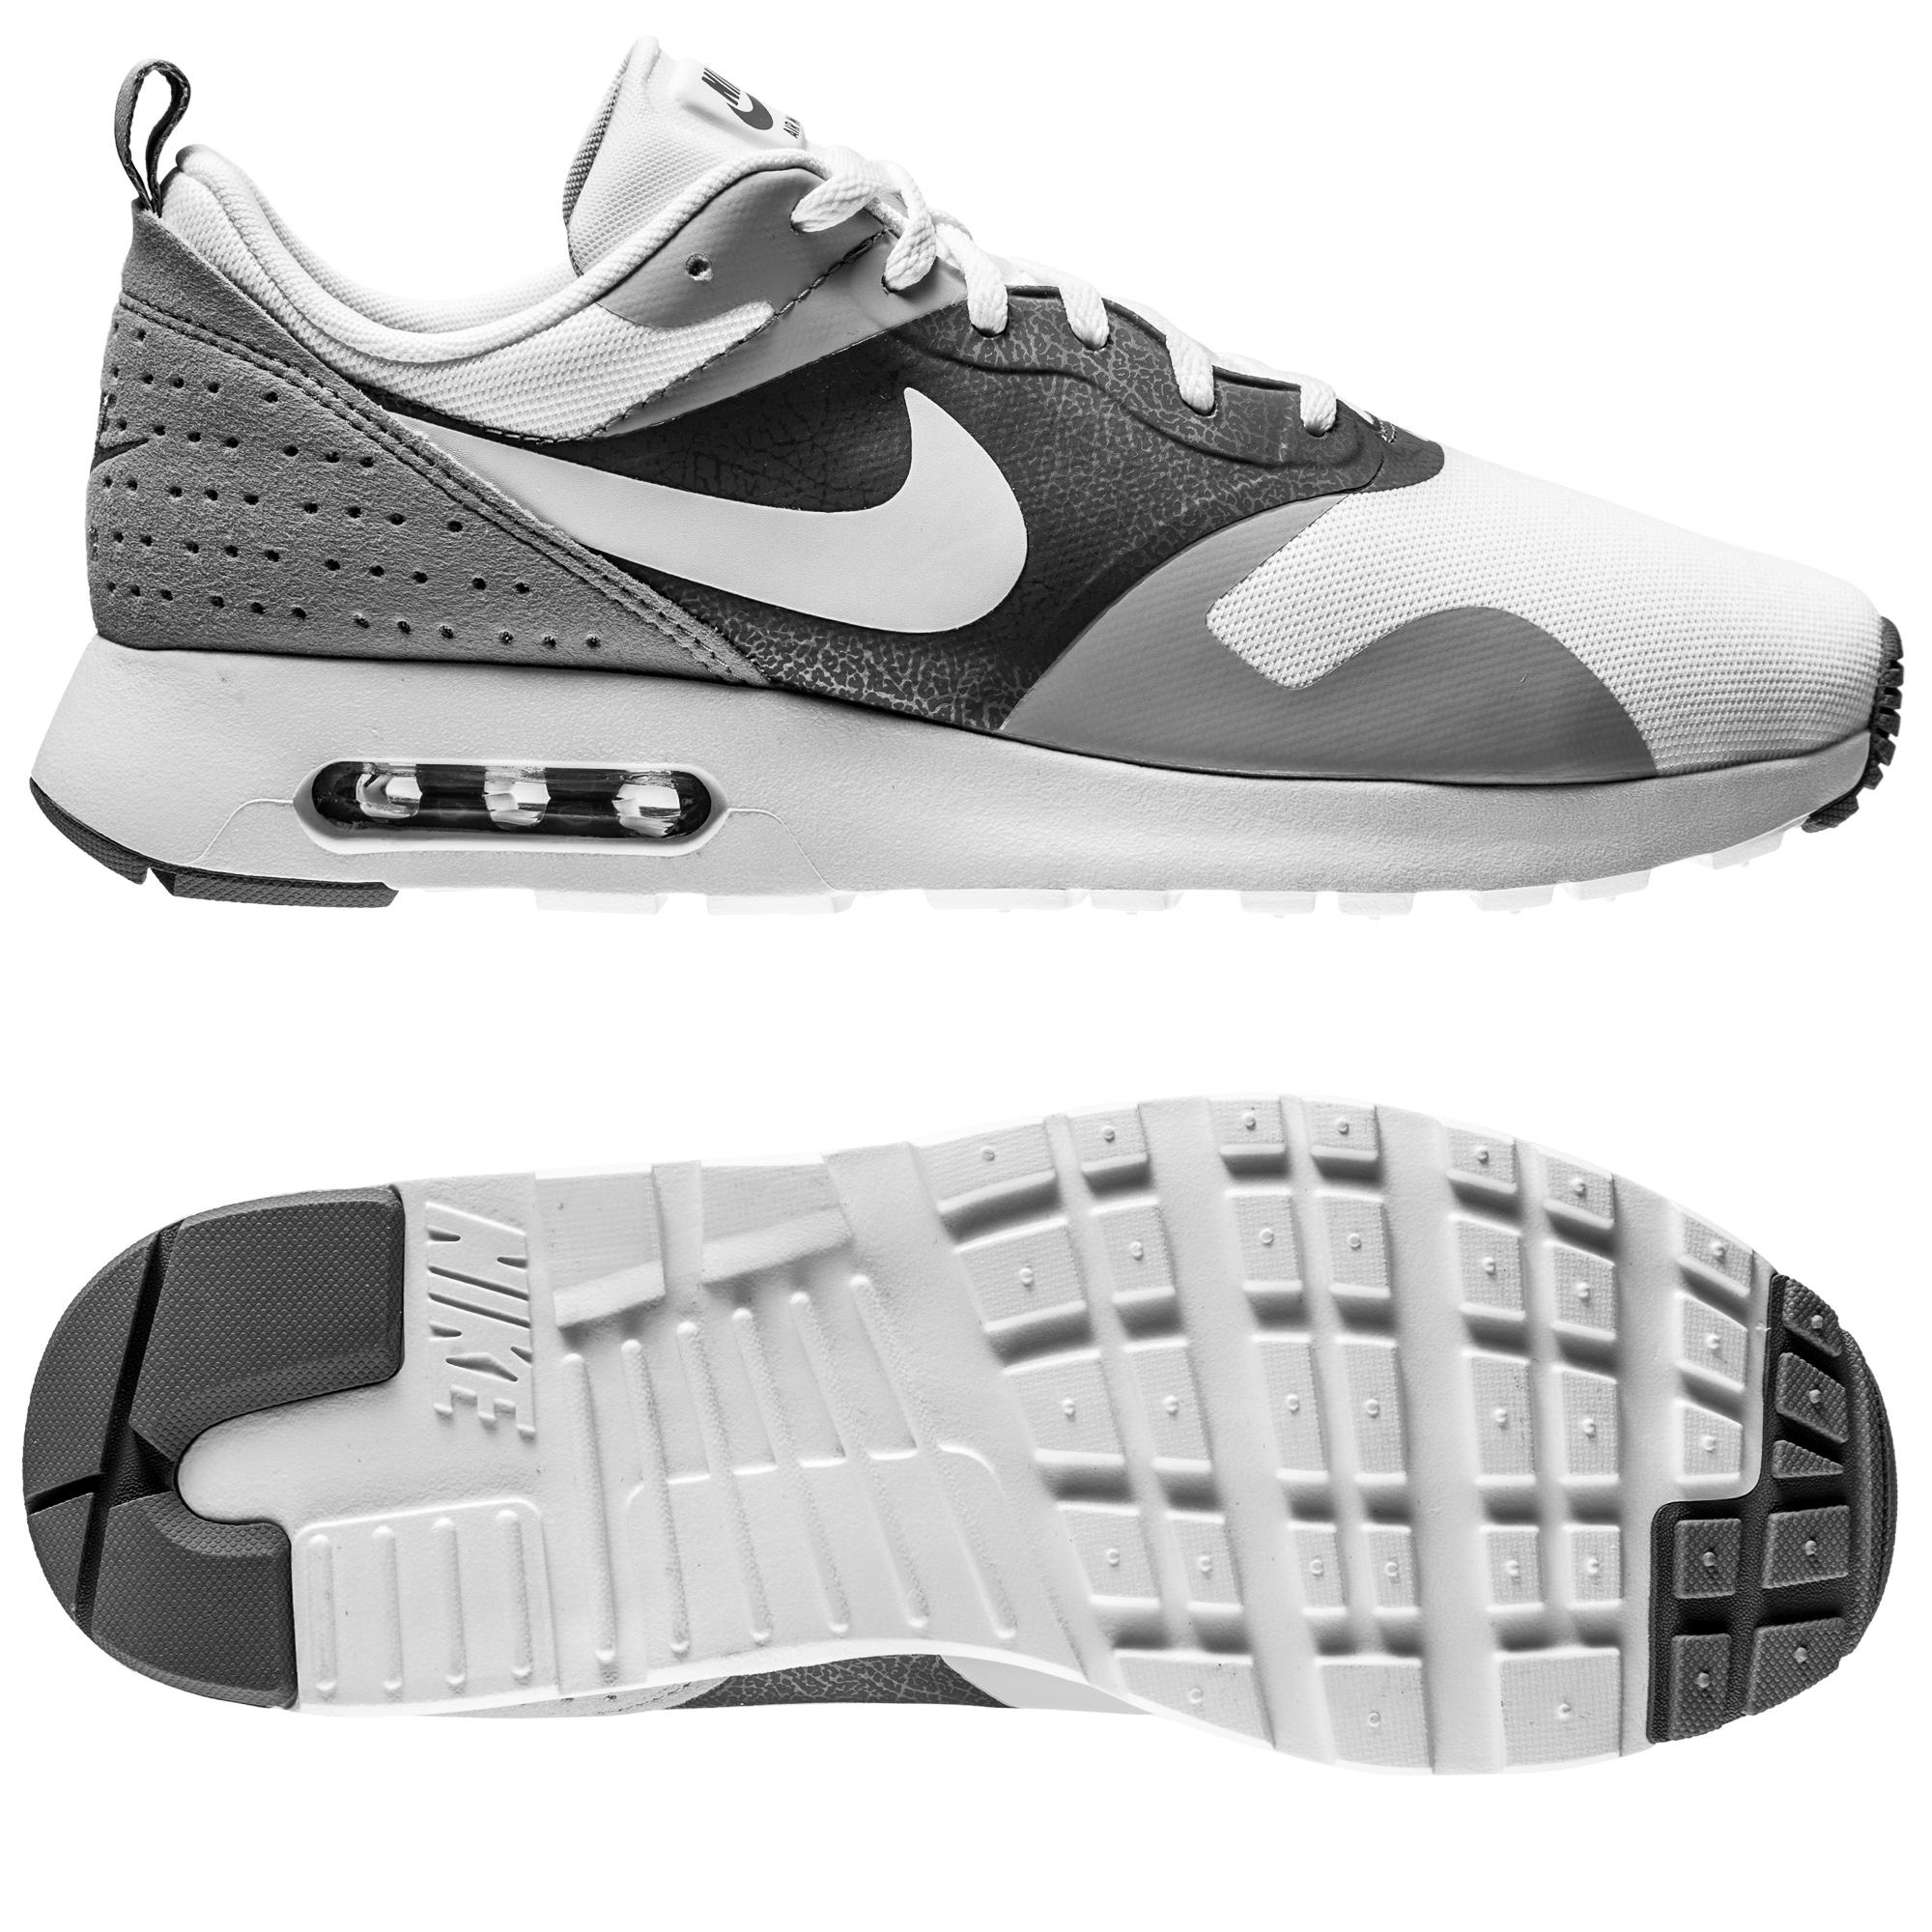 AIR MAX TAVAS LIGHT GREY SUEDE REVIEW YouTube